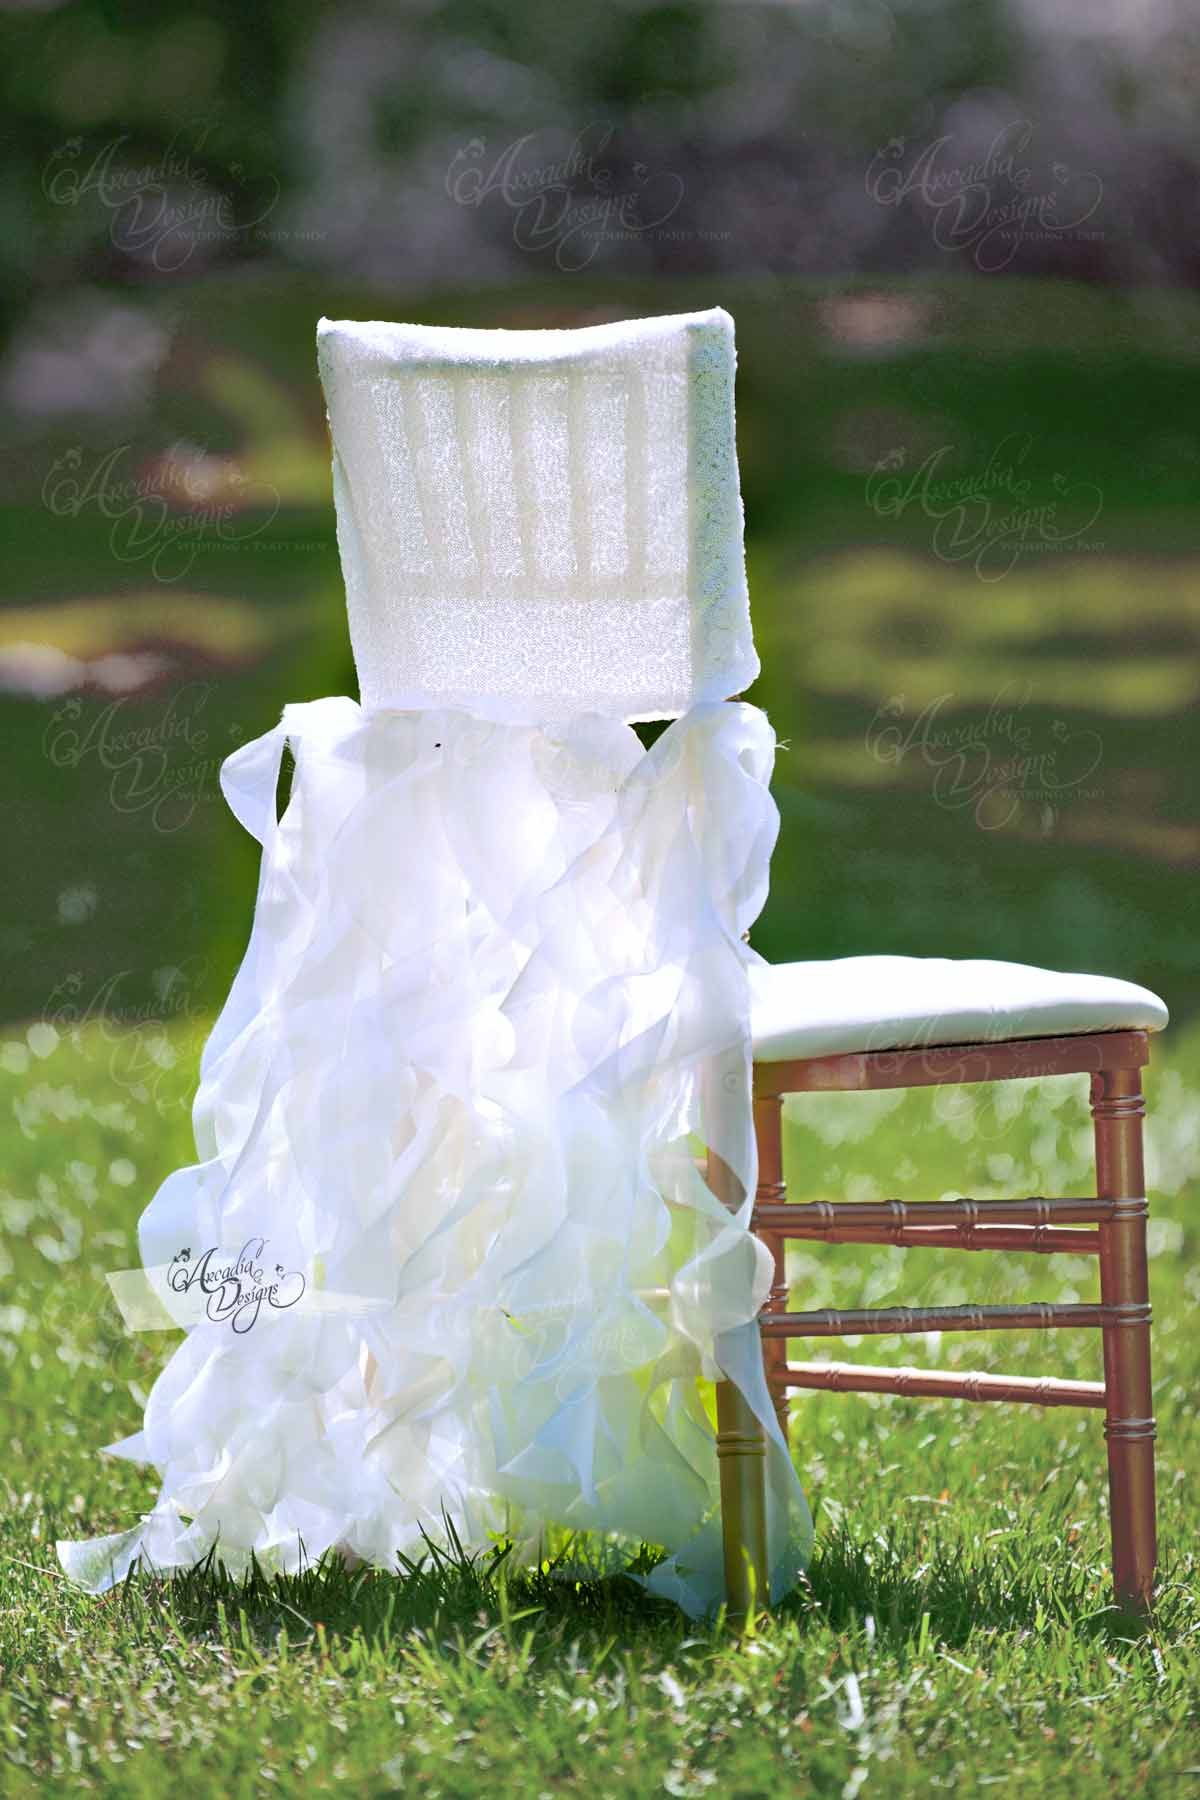 Shimmer White Curly Willow Sequin Chair Cover Arcadia